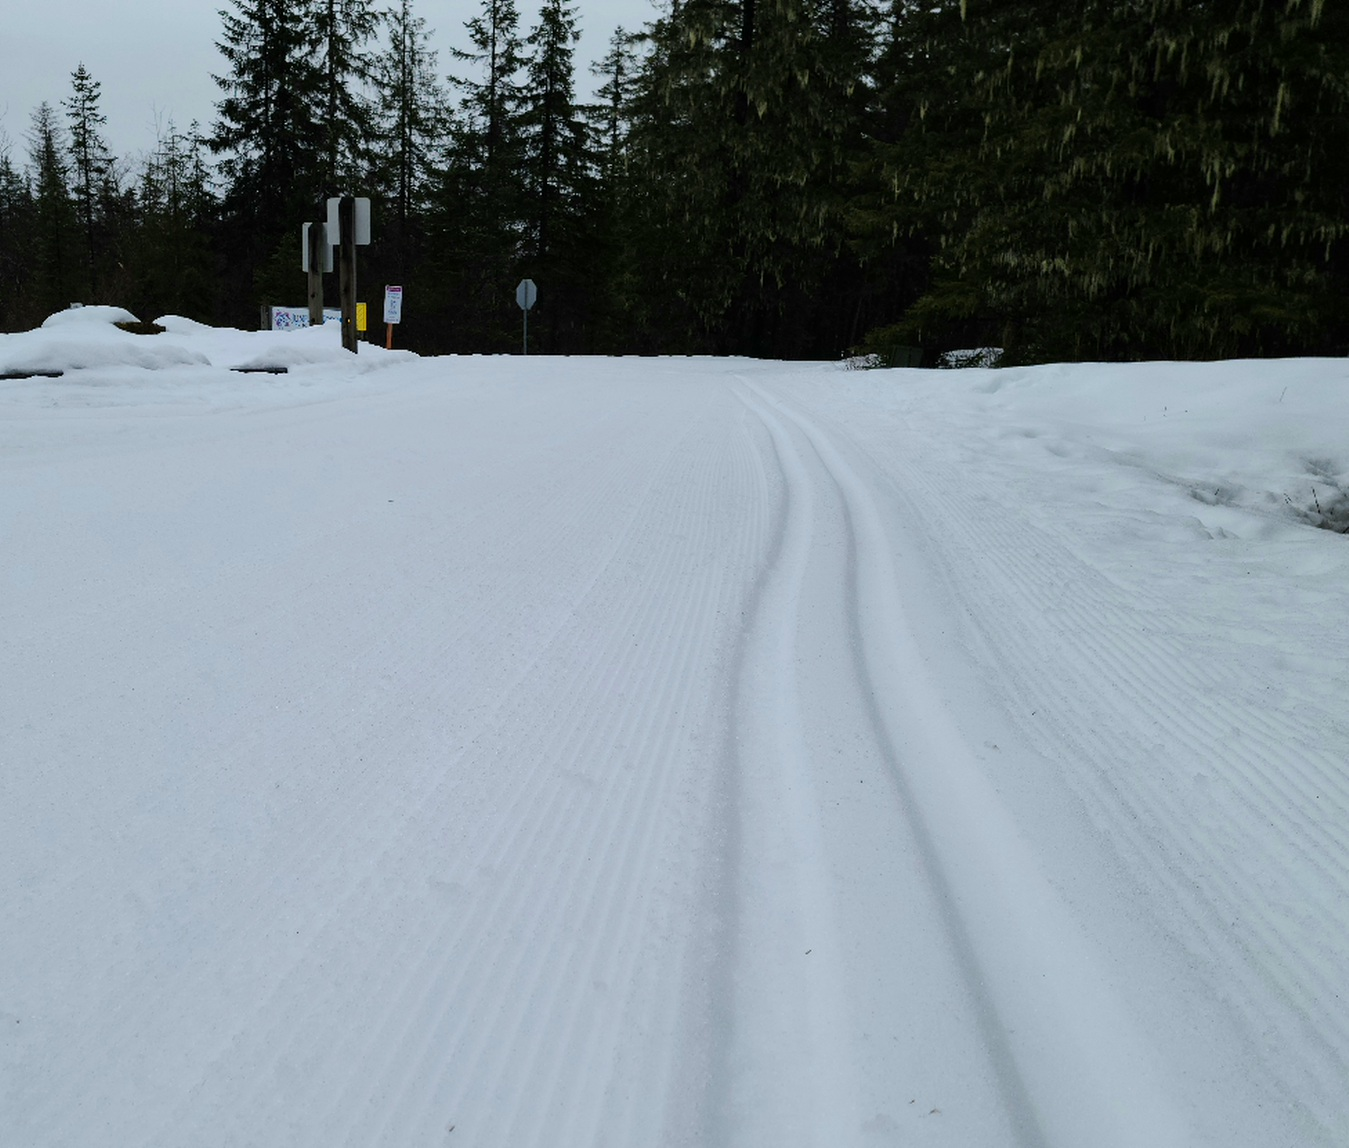 Campground – Thursday groomed